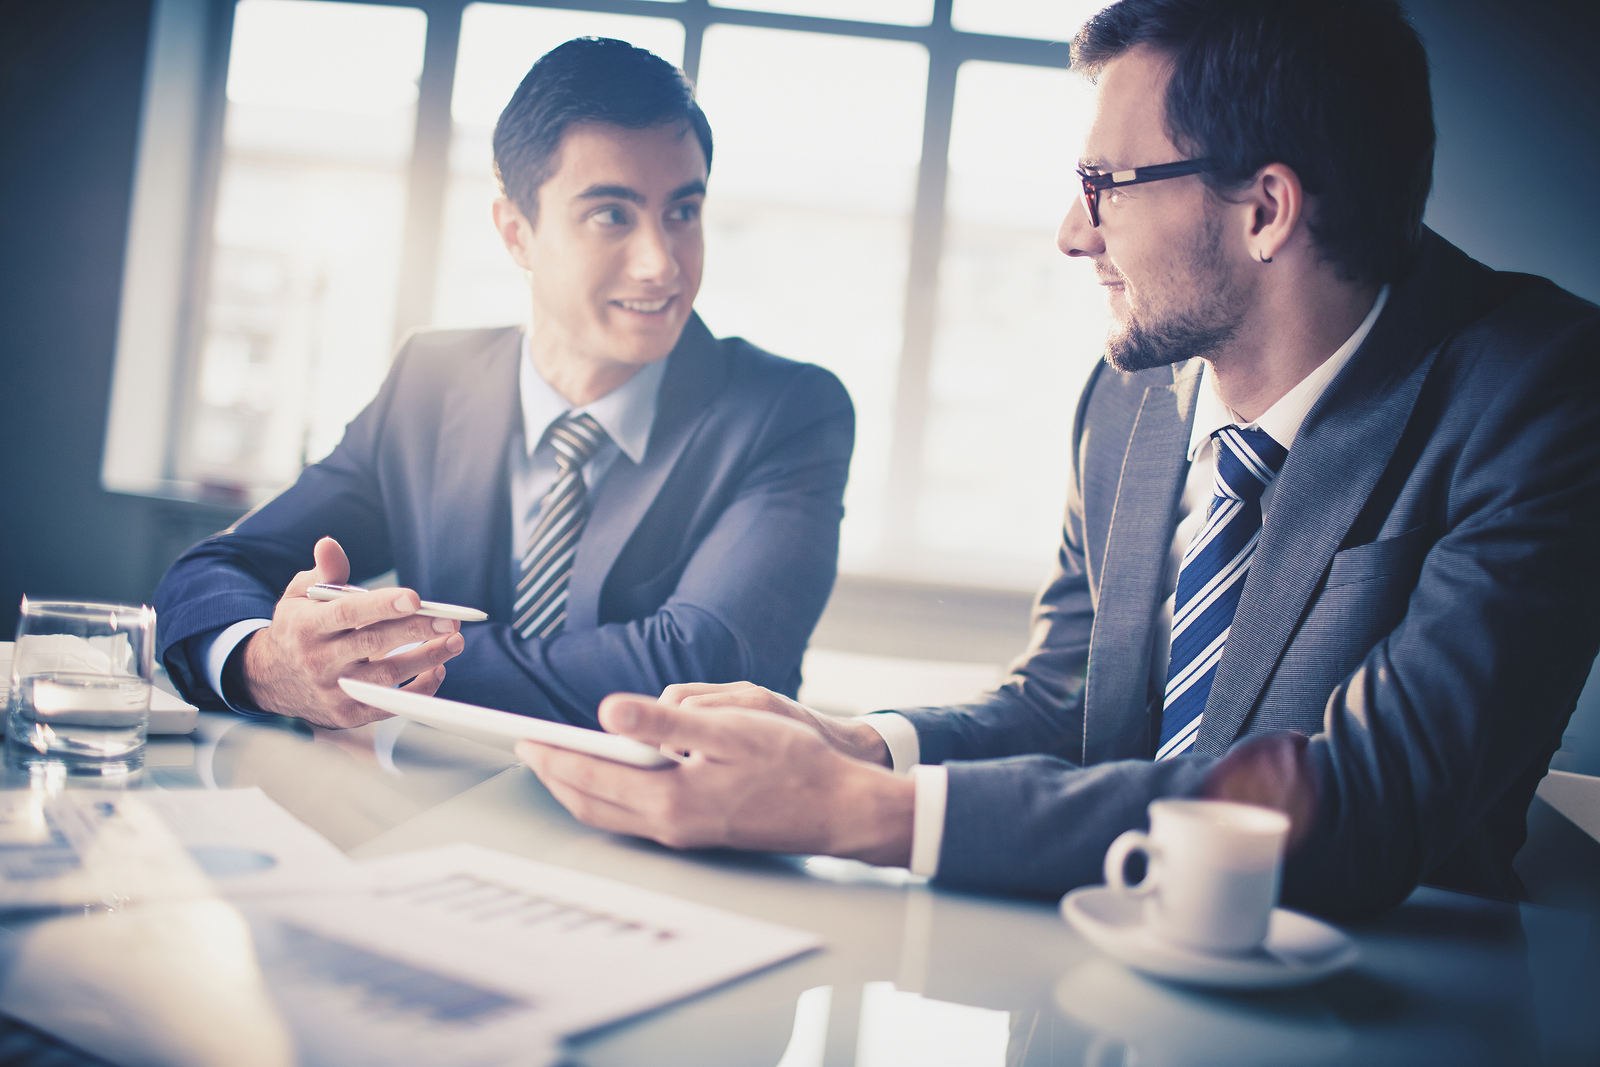 bigstock-Image-of-two-young-businessmen-52428256.jpg